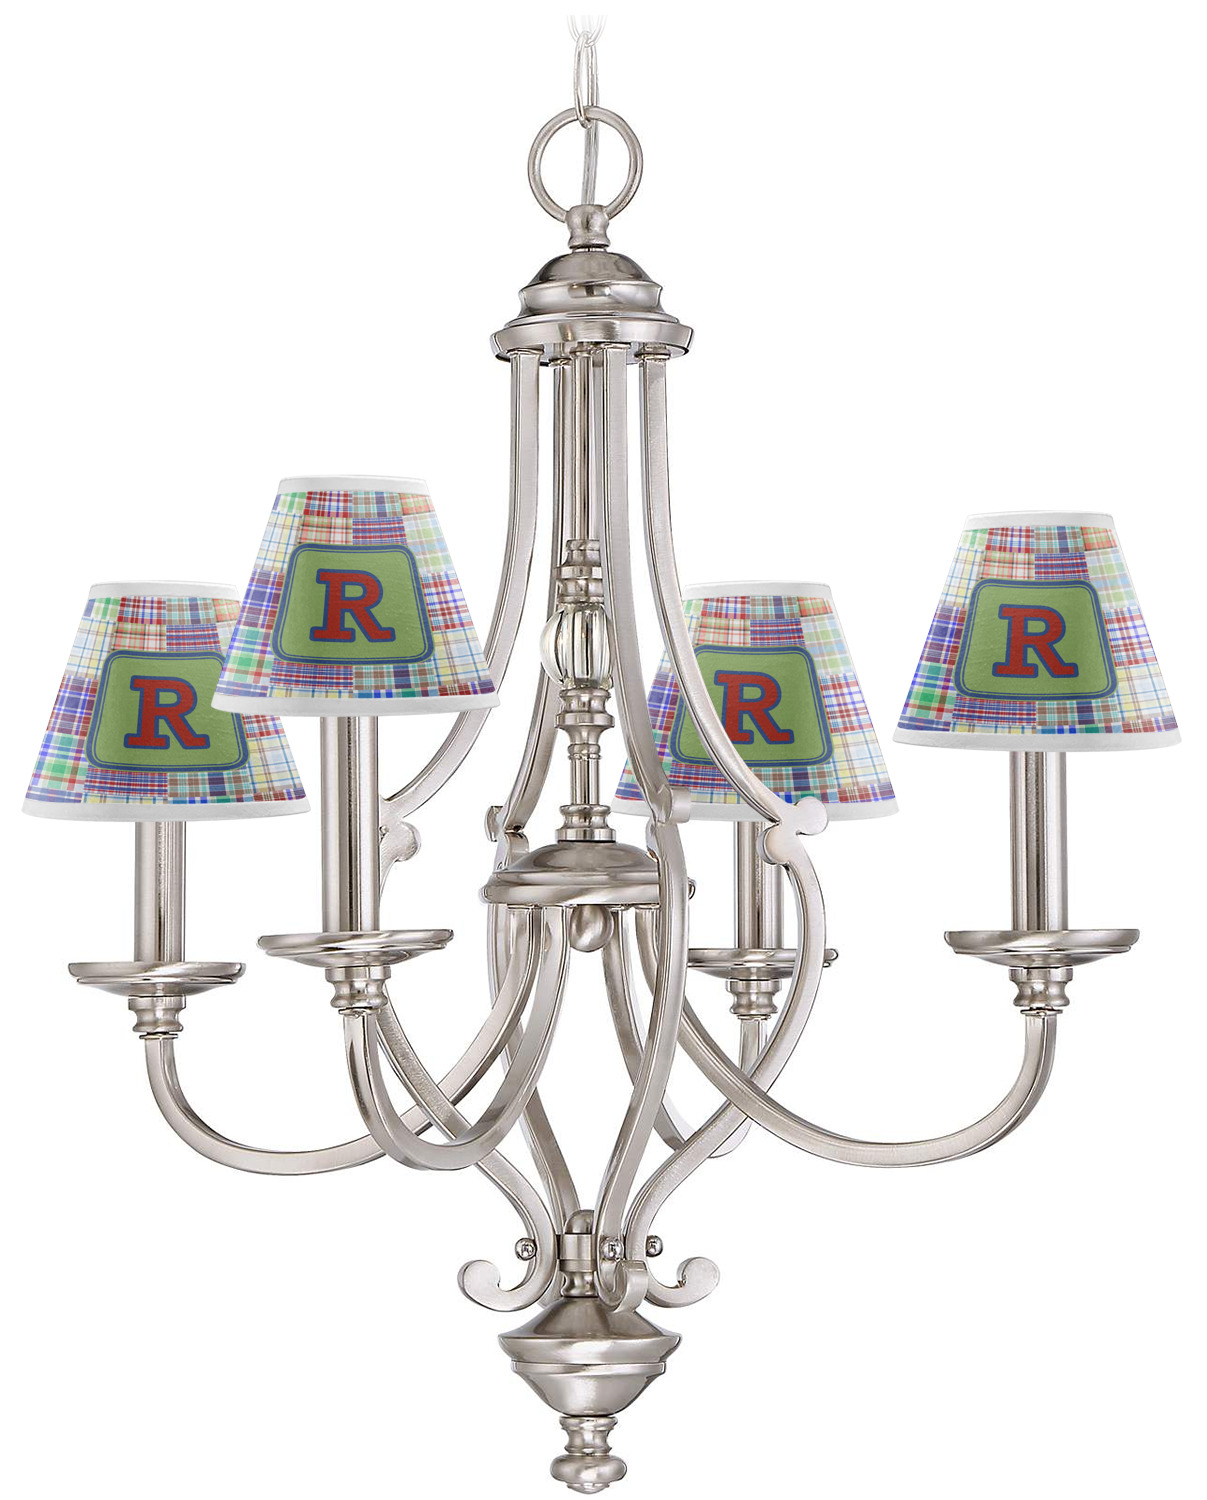 Appealing Checkered Chandelier Lamp Shades Gallery - Chandelier ...